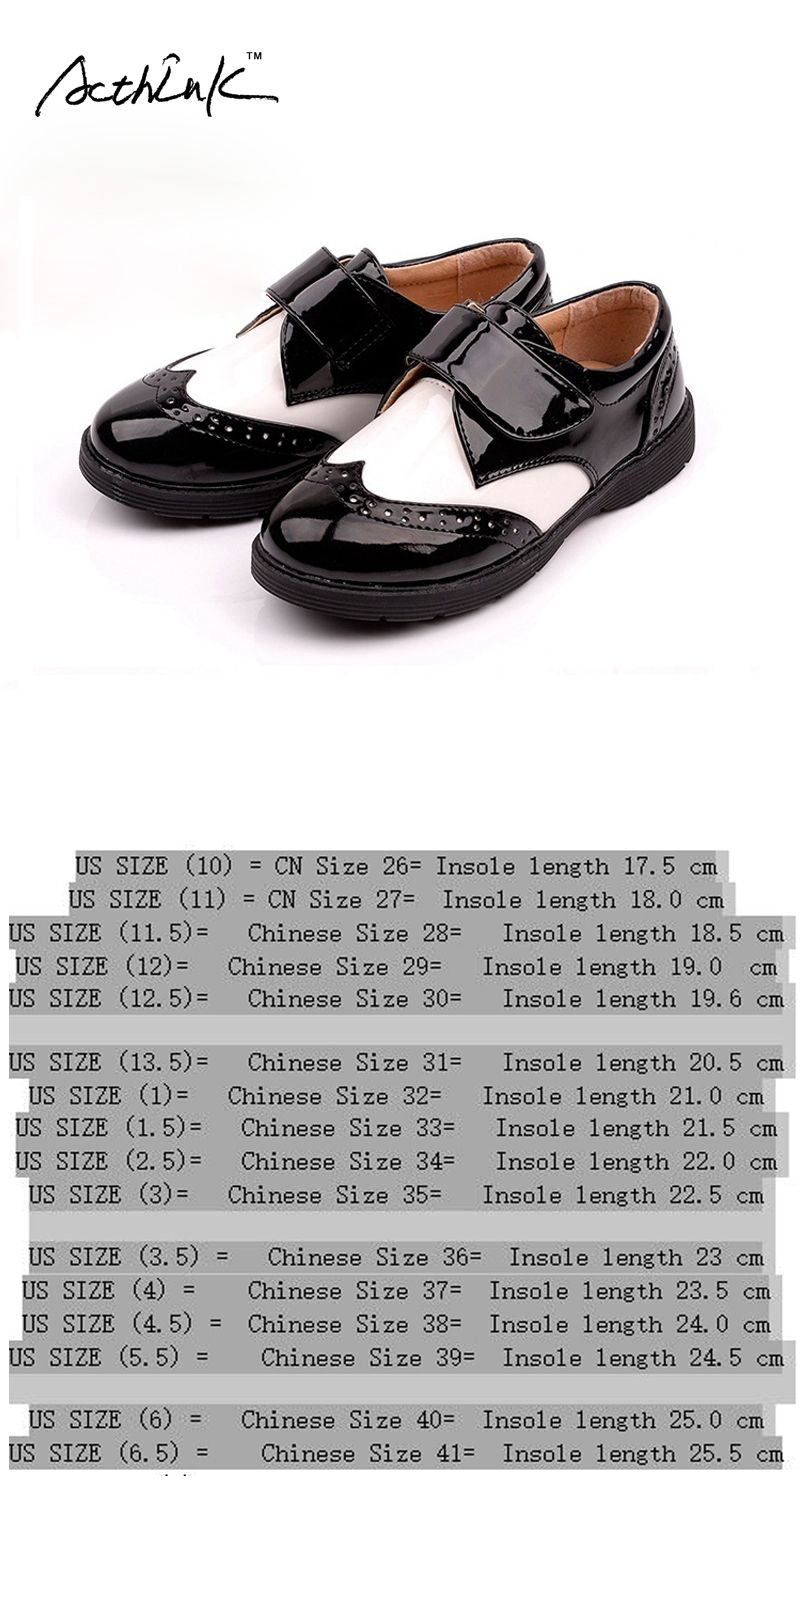 The size of childrens shoes 21, 23 is how many cm along the insole